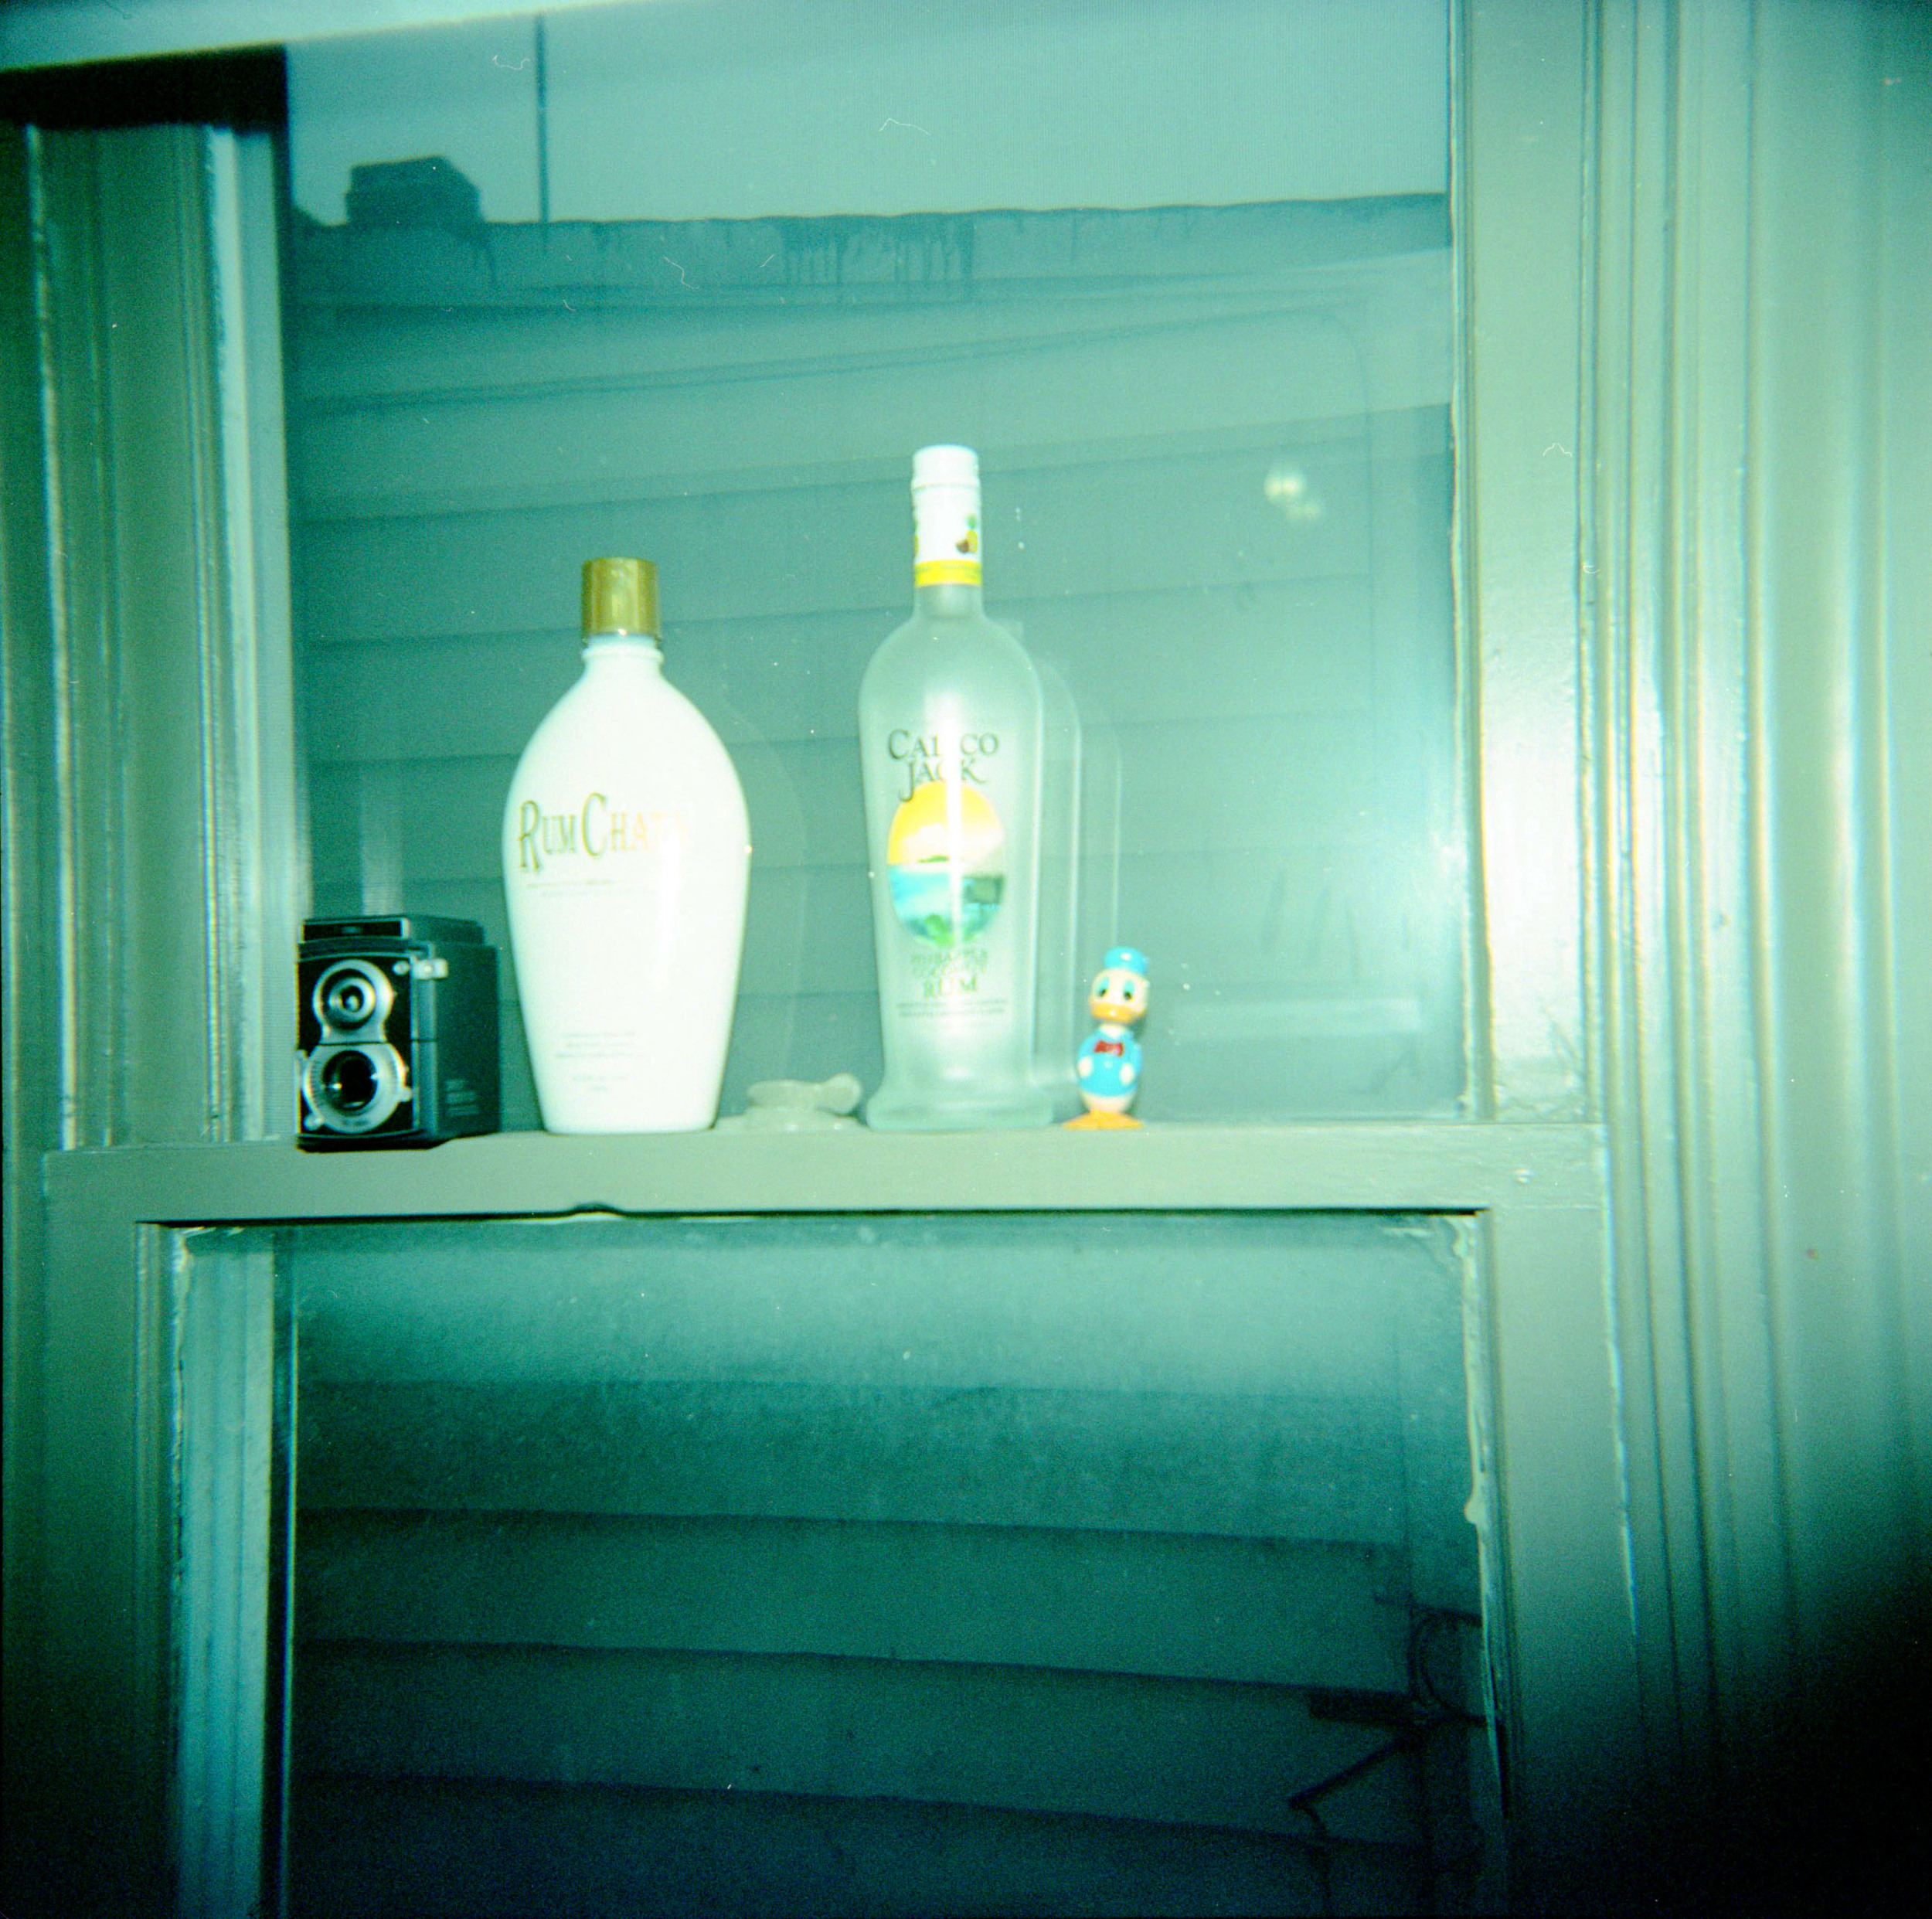 windowsill.jpg